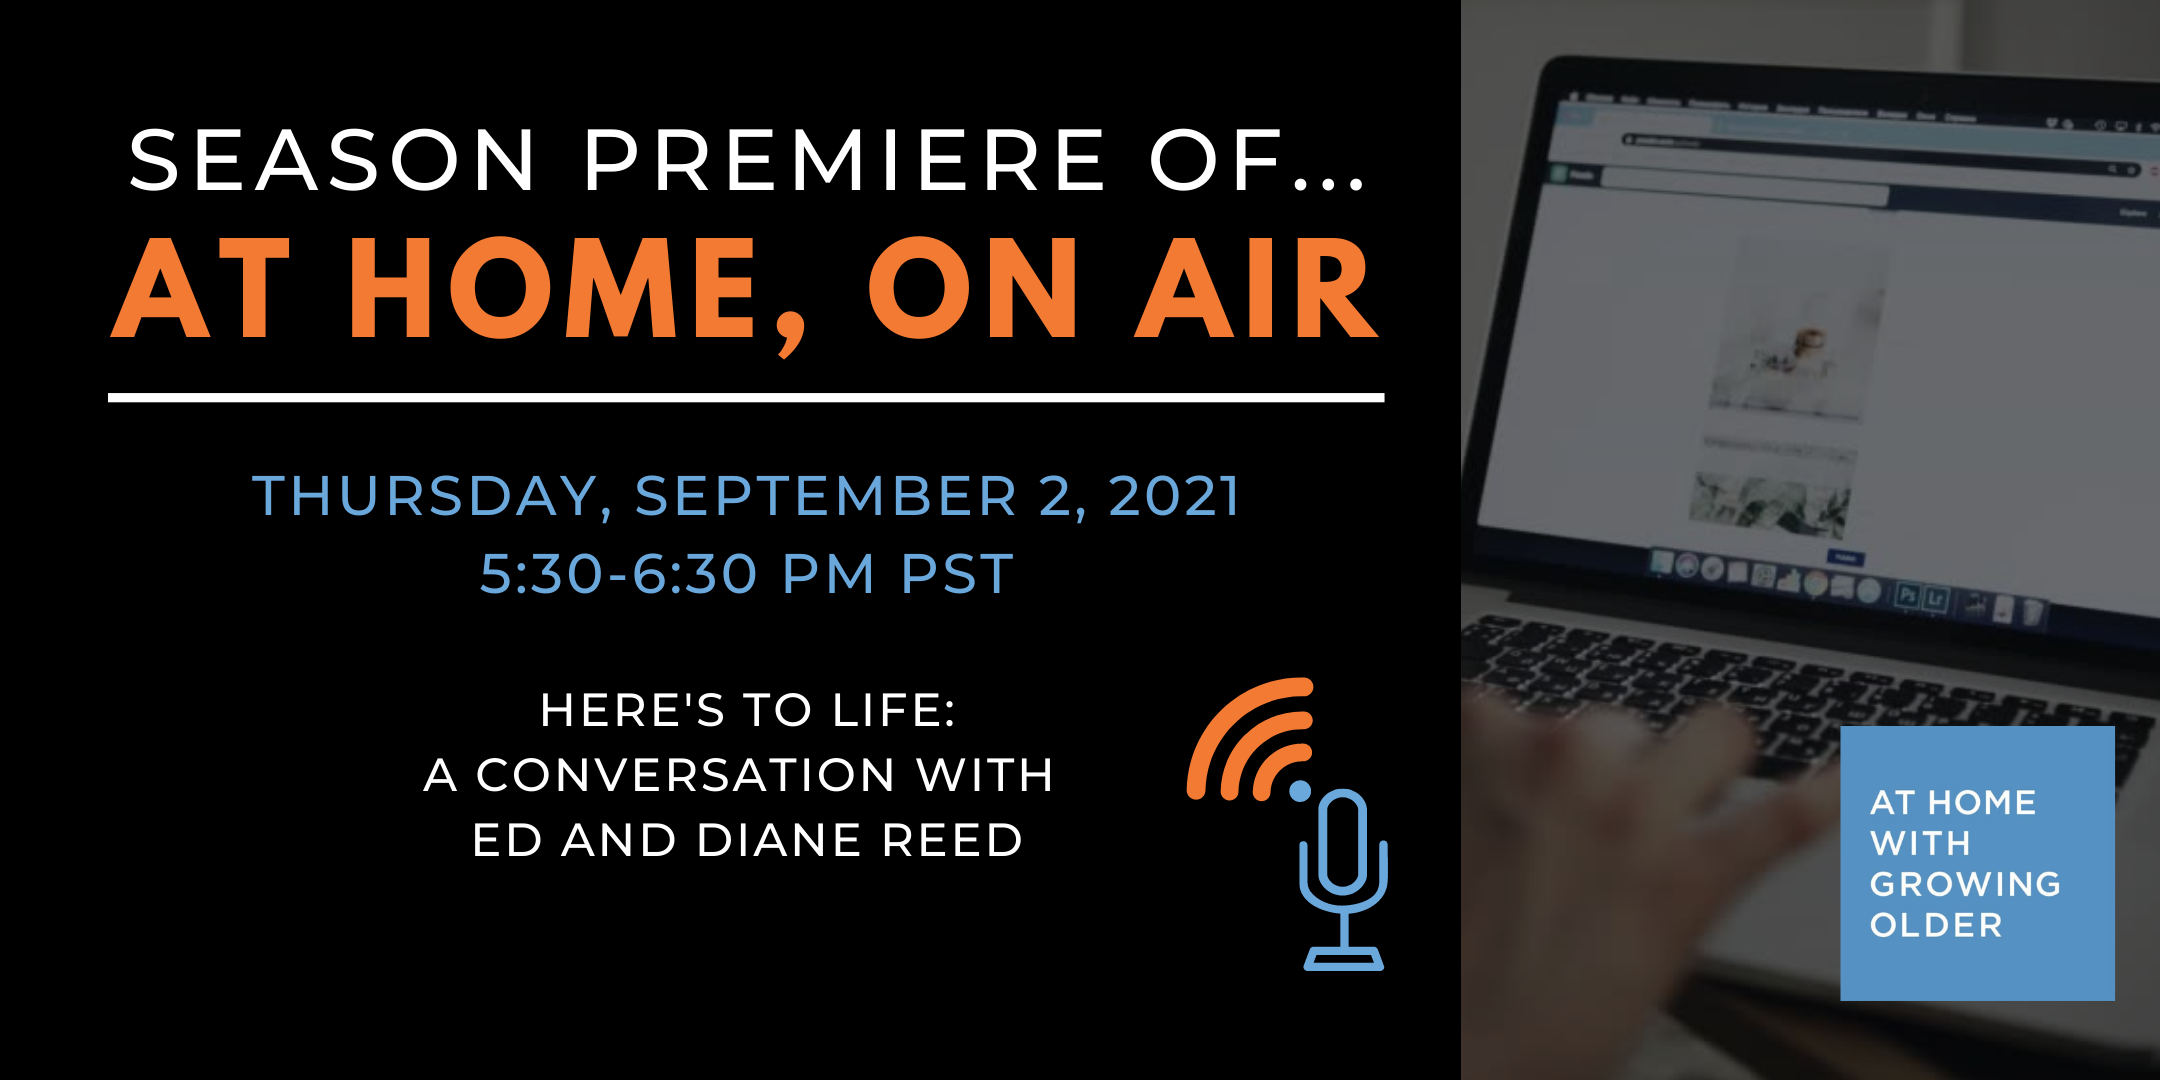 A Conversation with Ed and Diane Reed